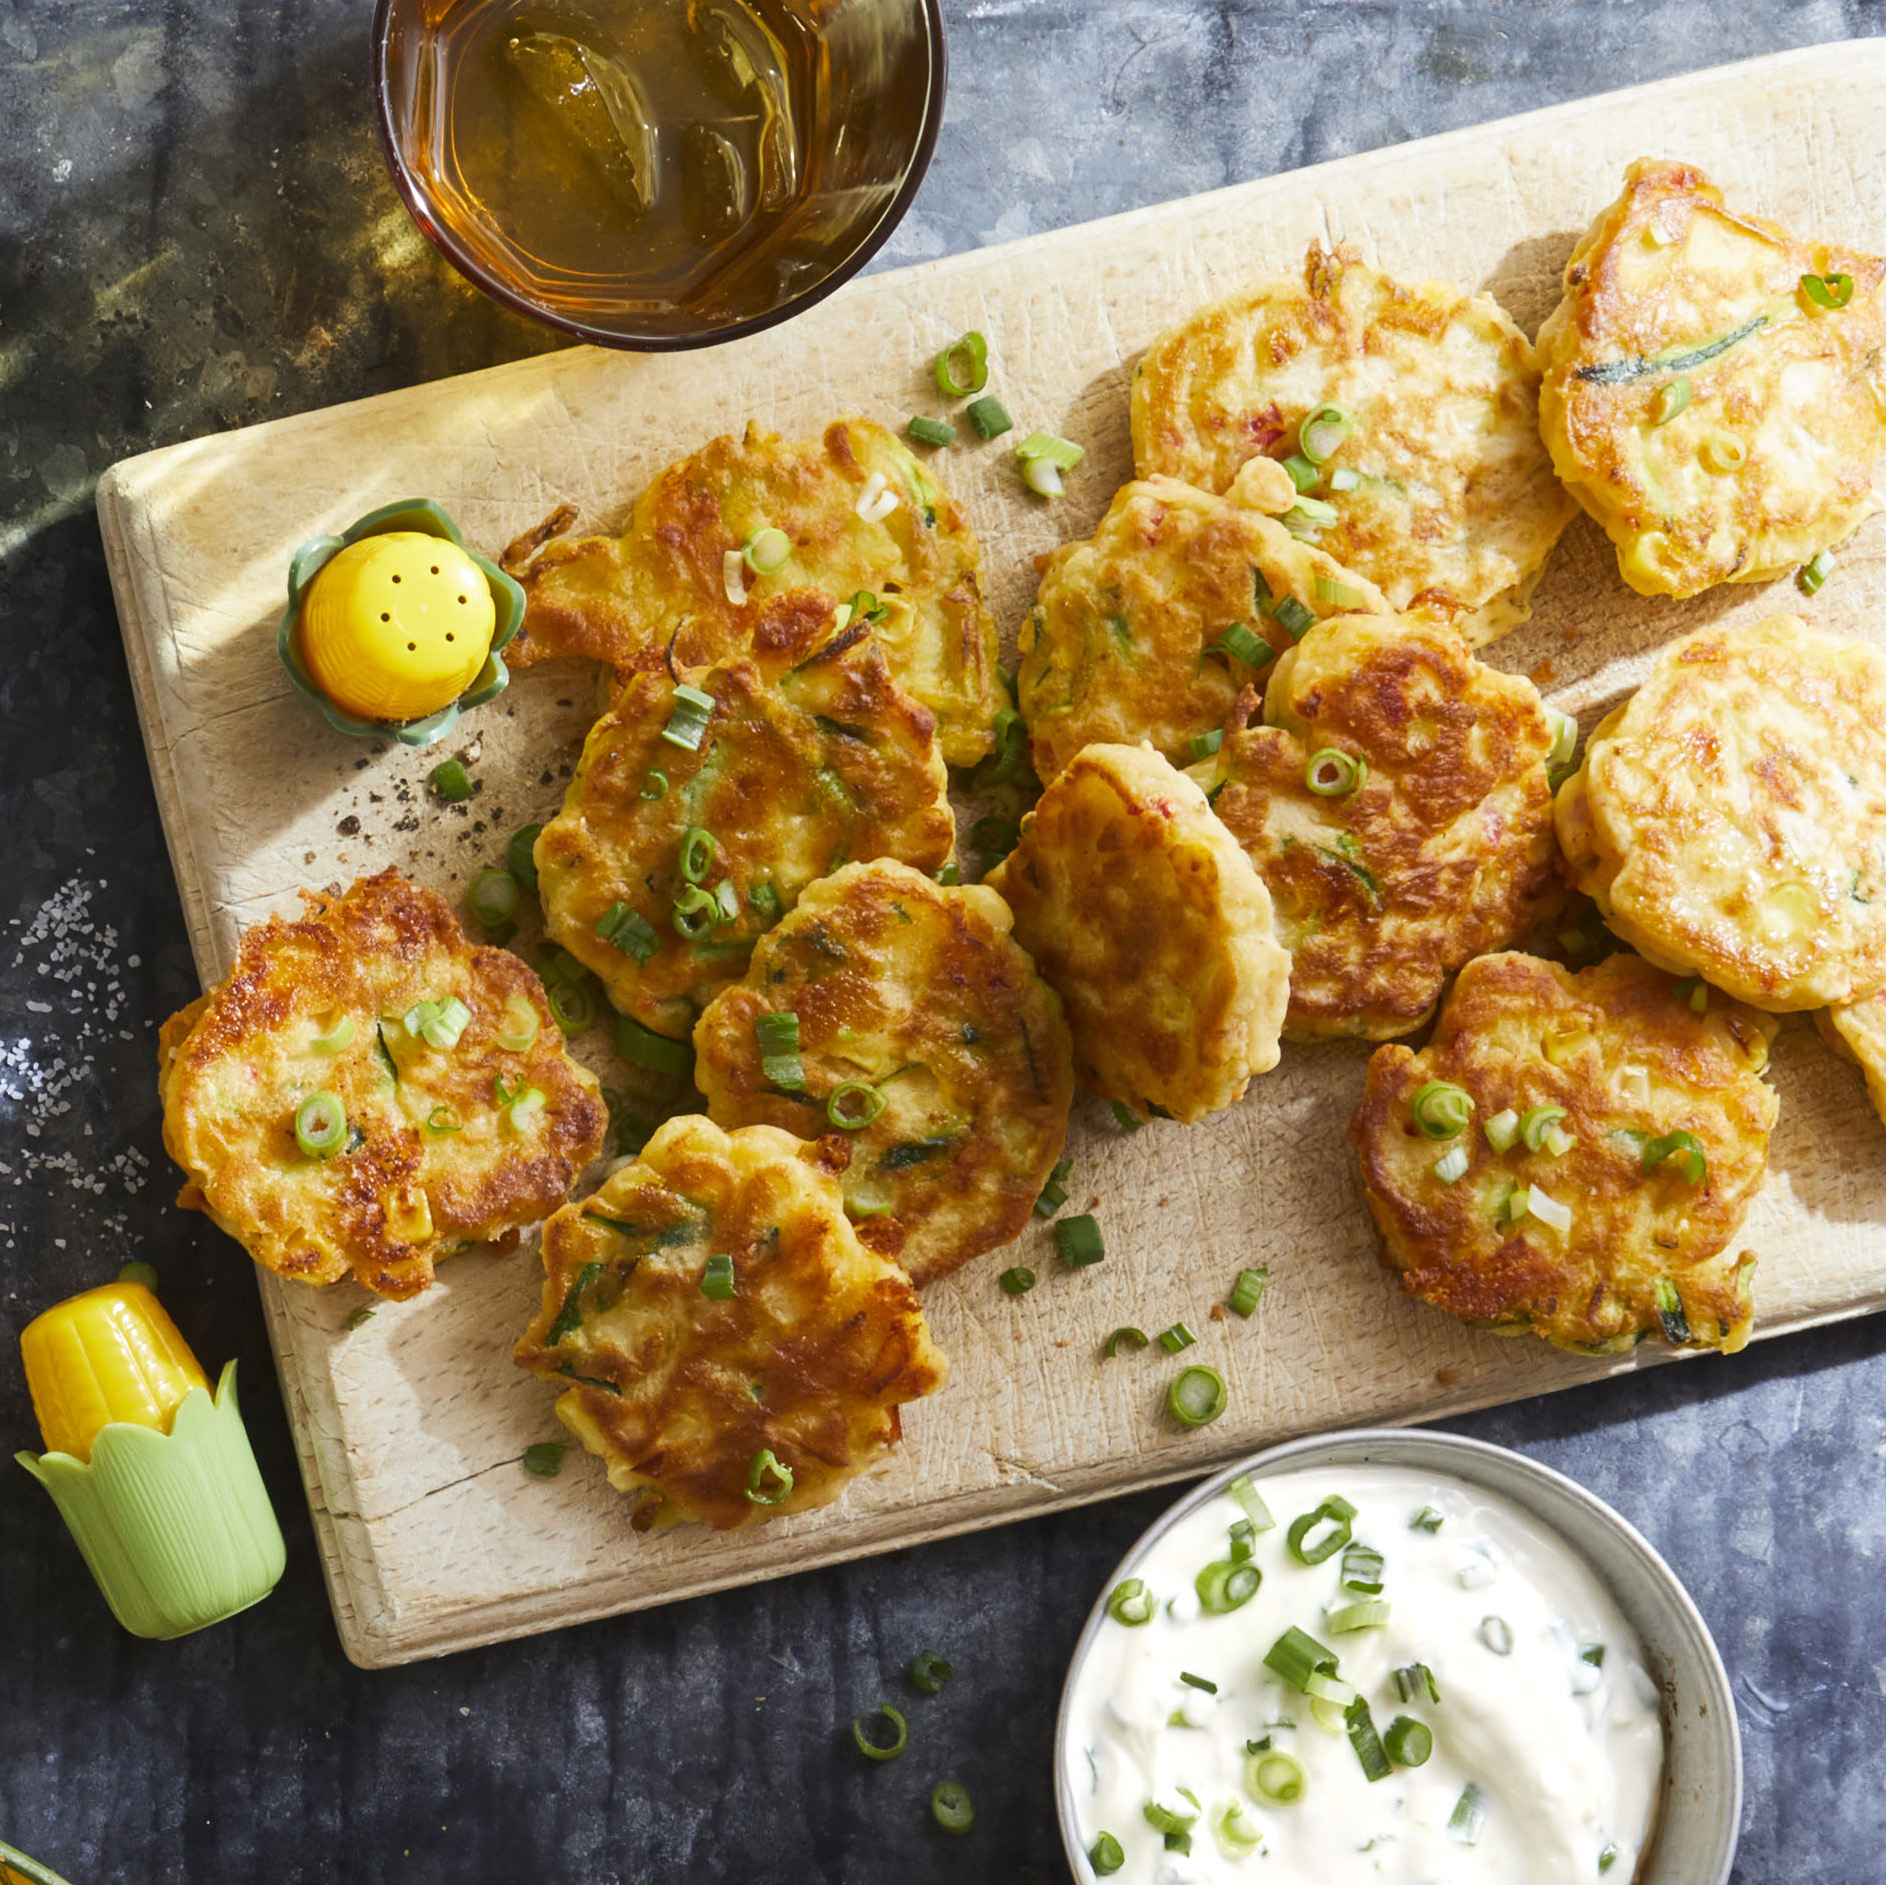 Zucchini Corn Fritters on a wooden board beside bowl of dipping sauce